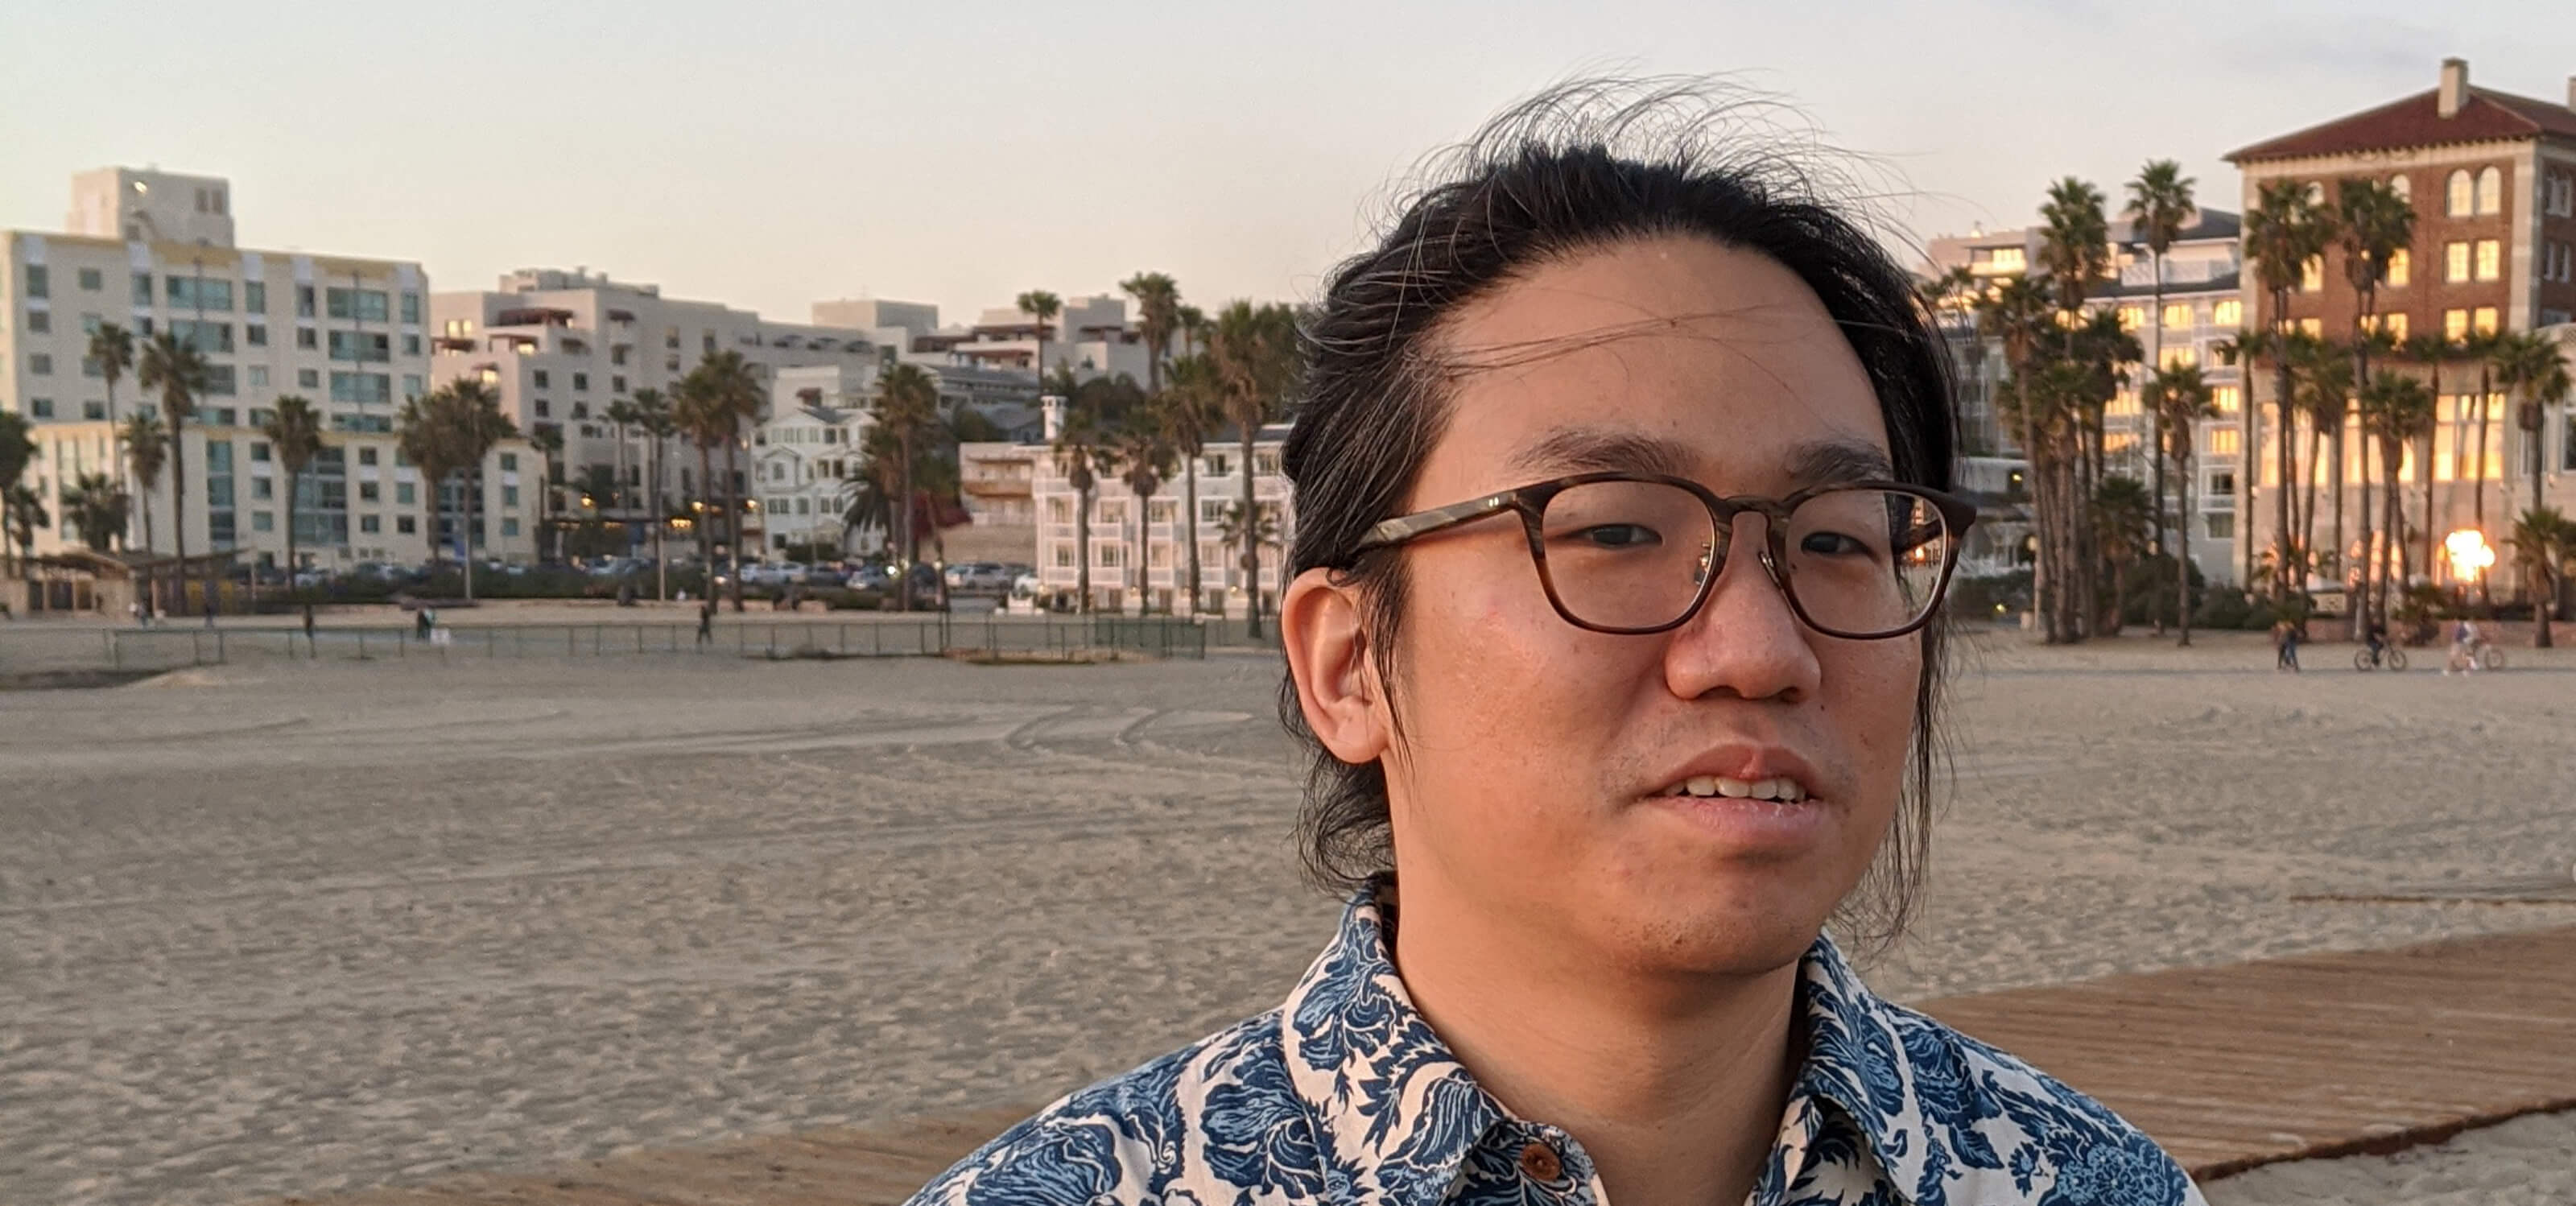 DigiPen graduate Chia-Hao Ching poses on a beach lined with palm trees.